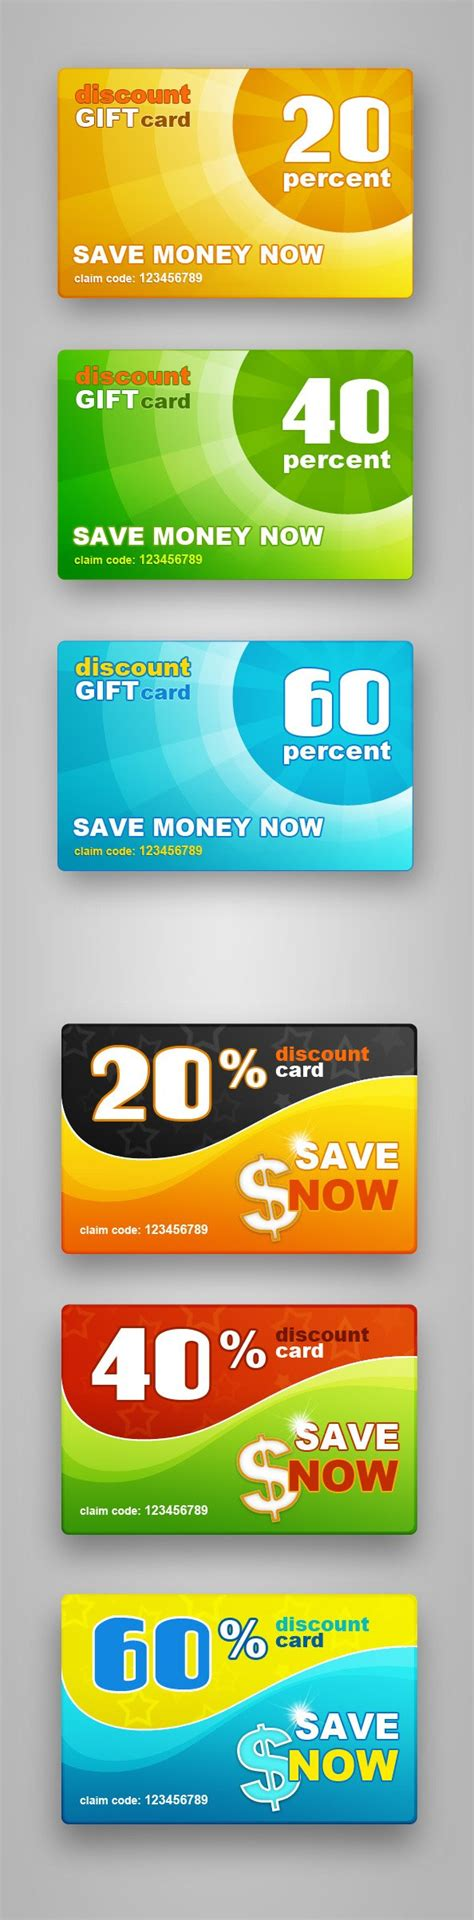 Finance Gift Cards - free psd discount gift cards vector files 365psd com